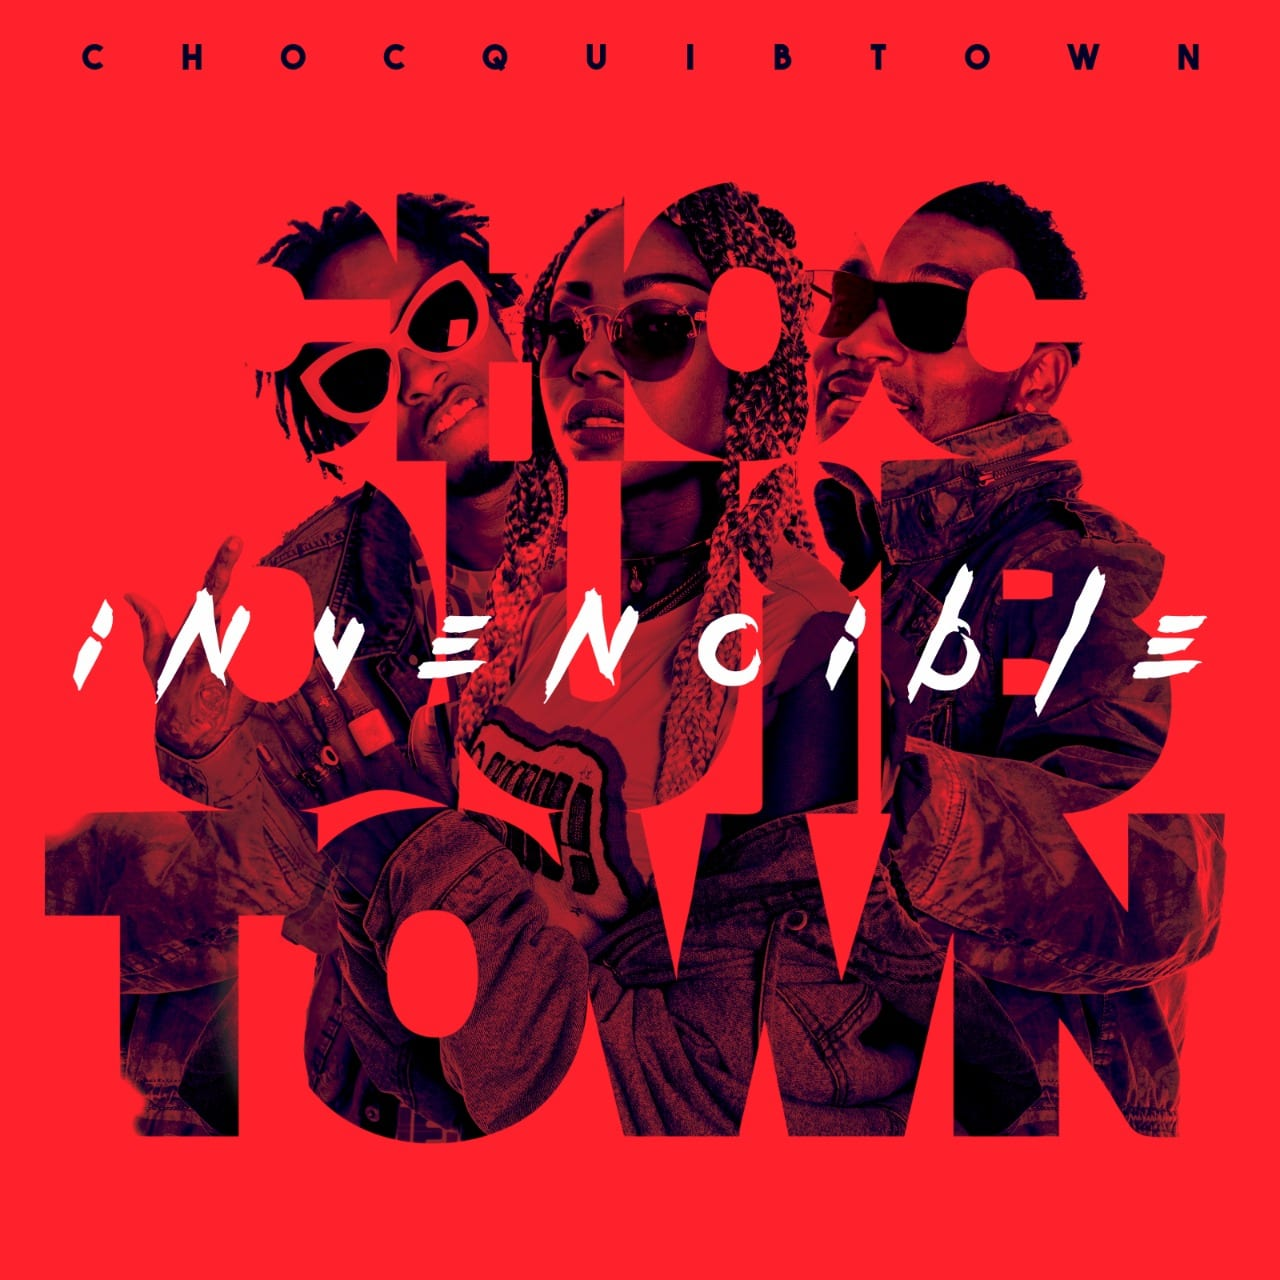 invencible choquibtown 2heart